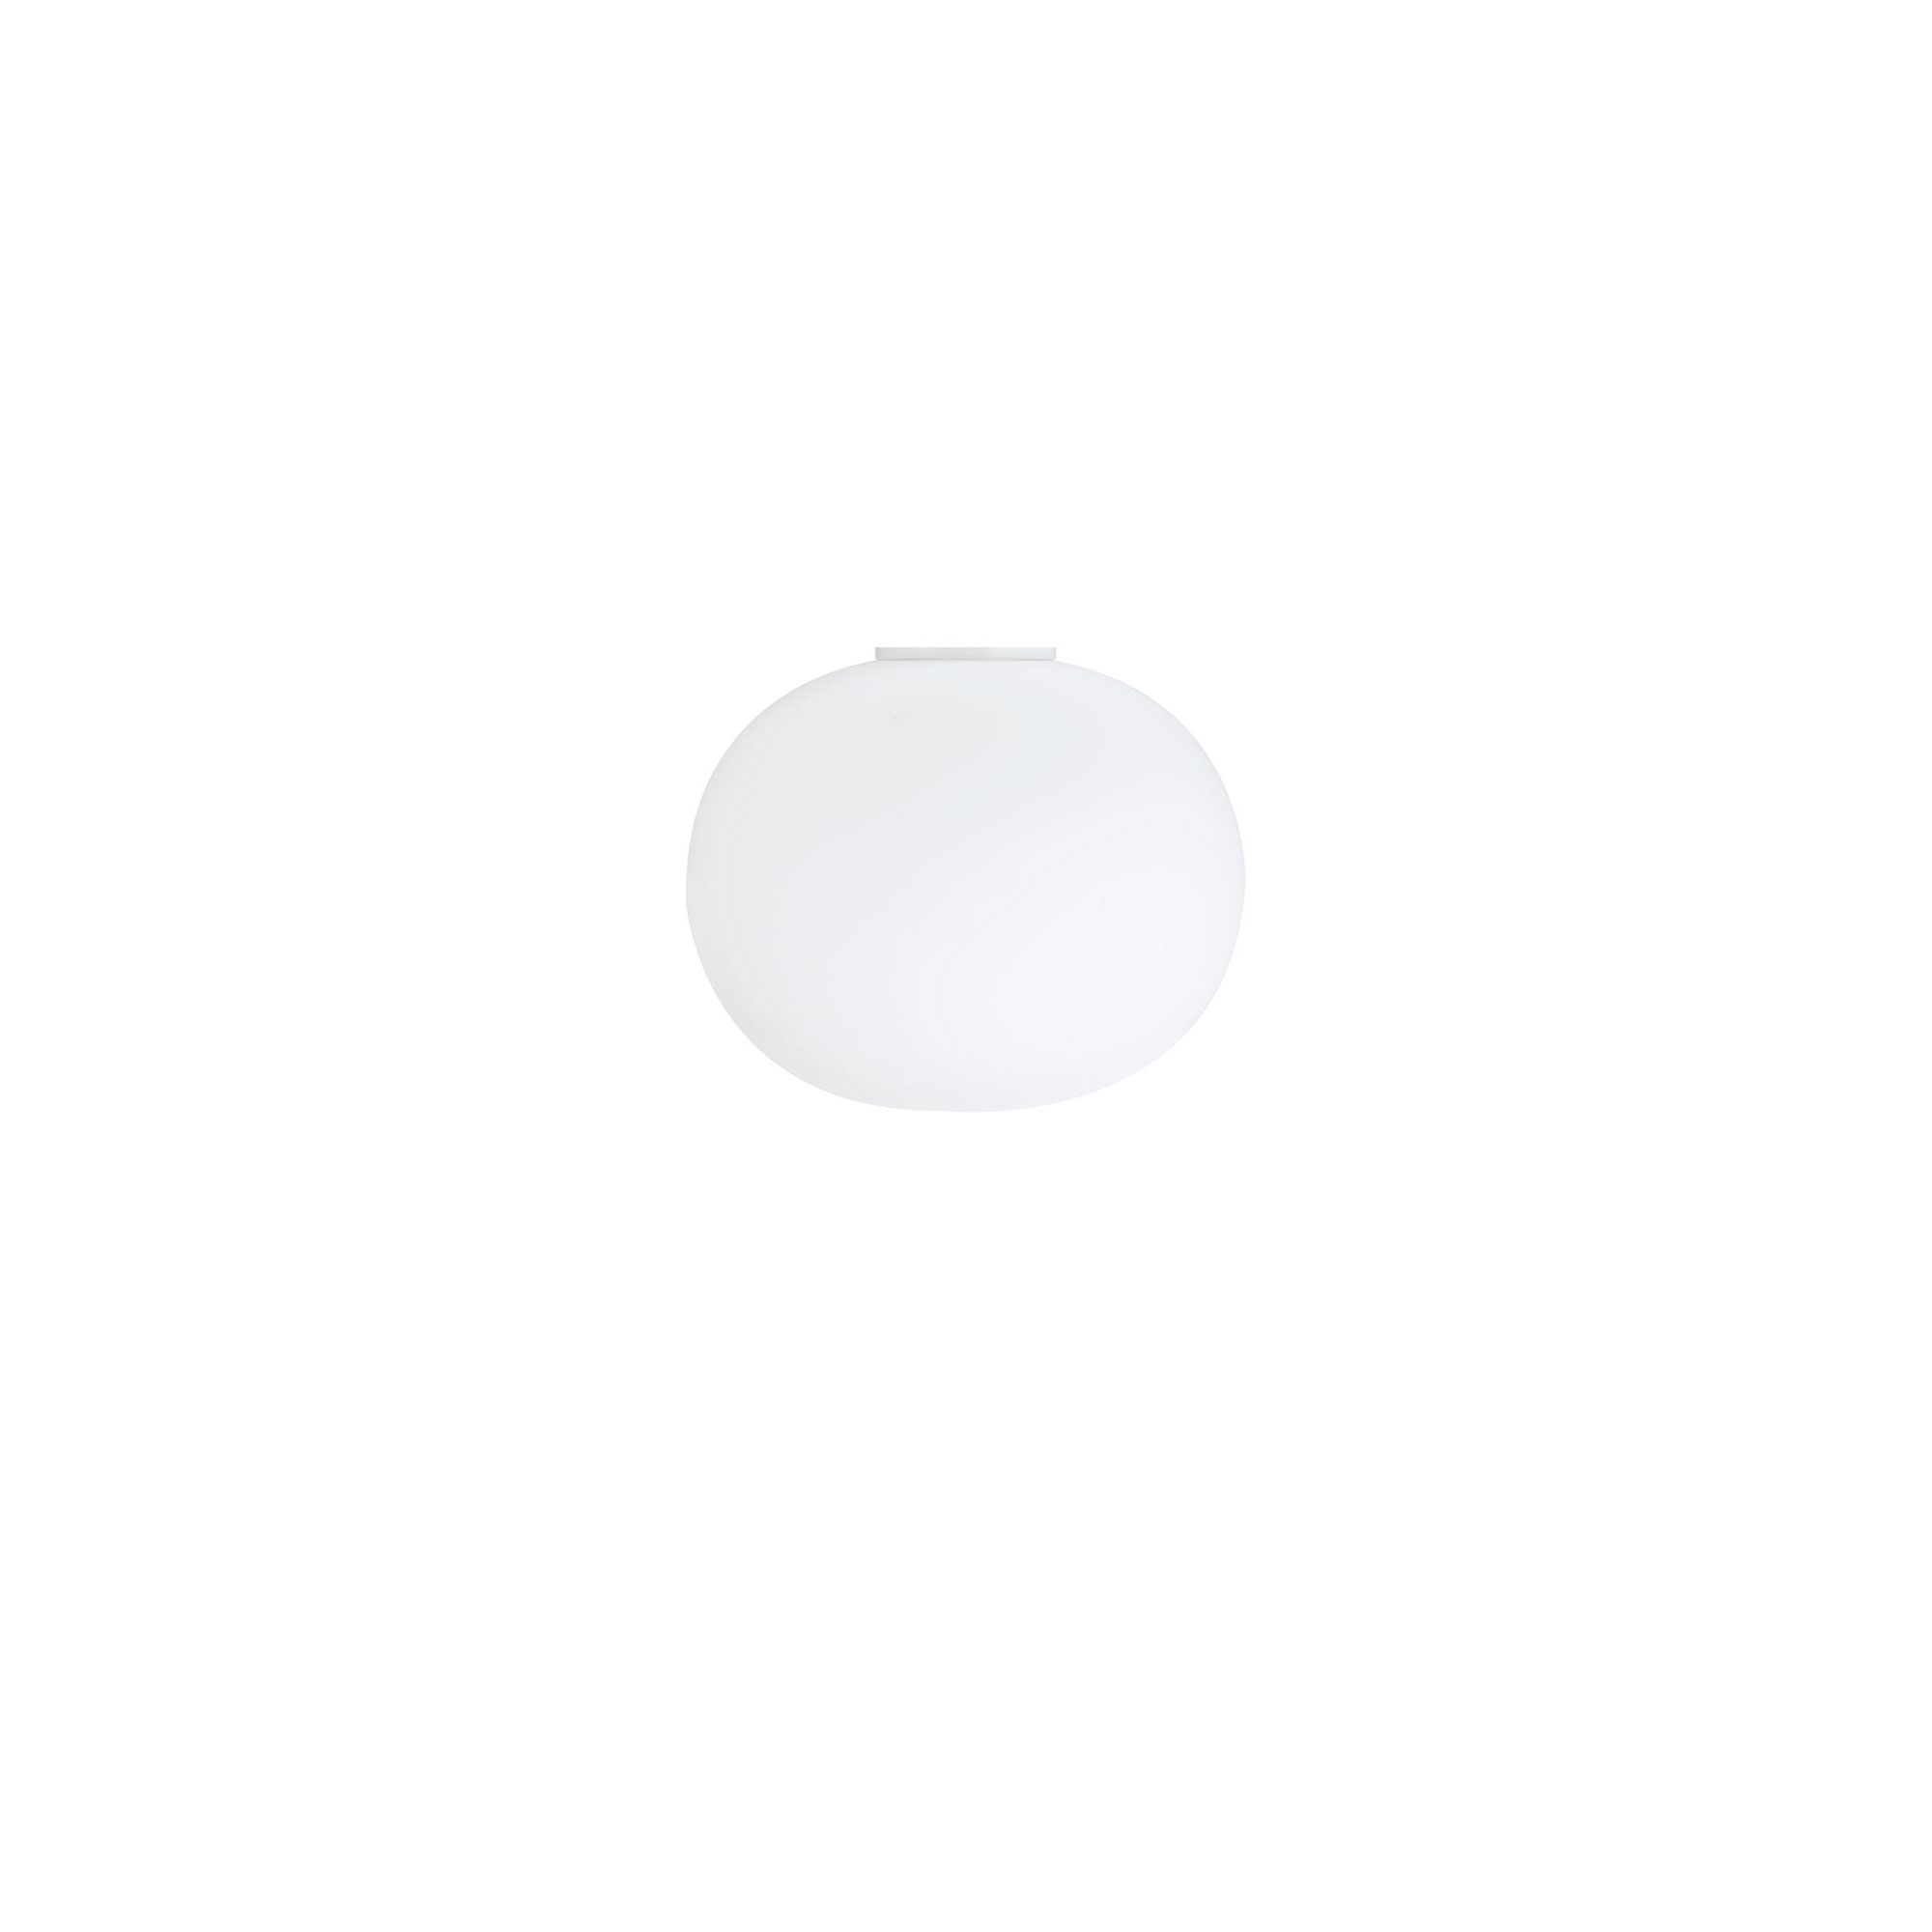 Glo-Ball Ceiling/Wall Zero